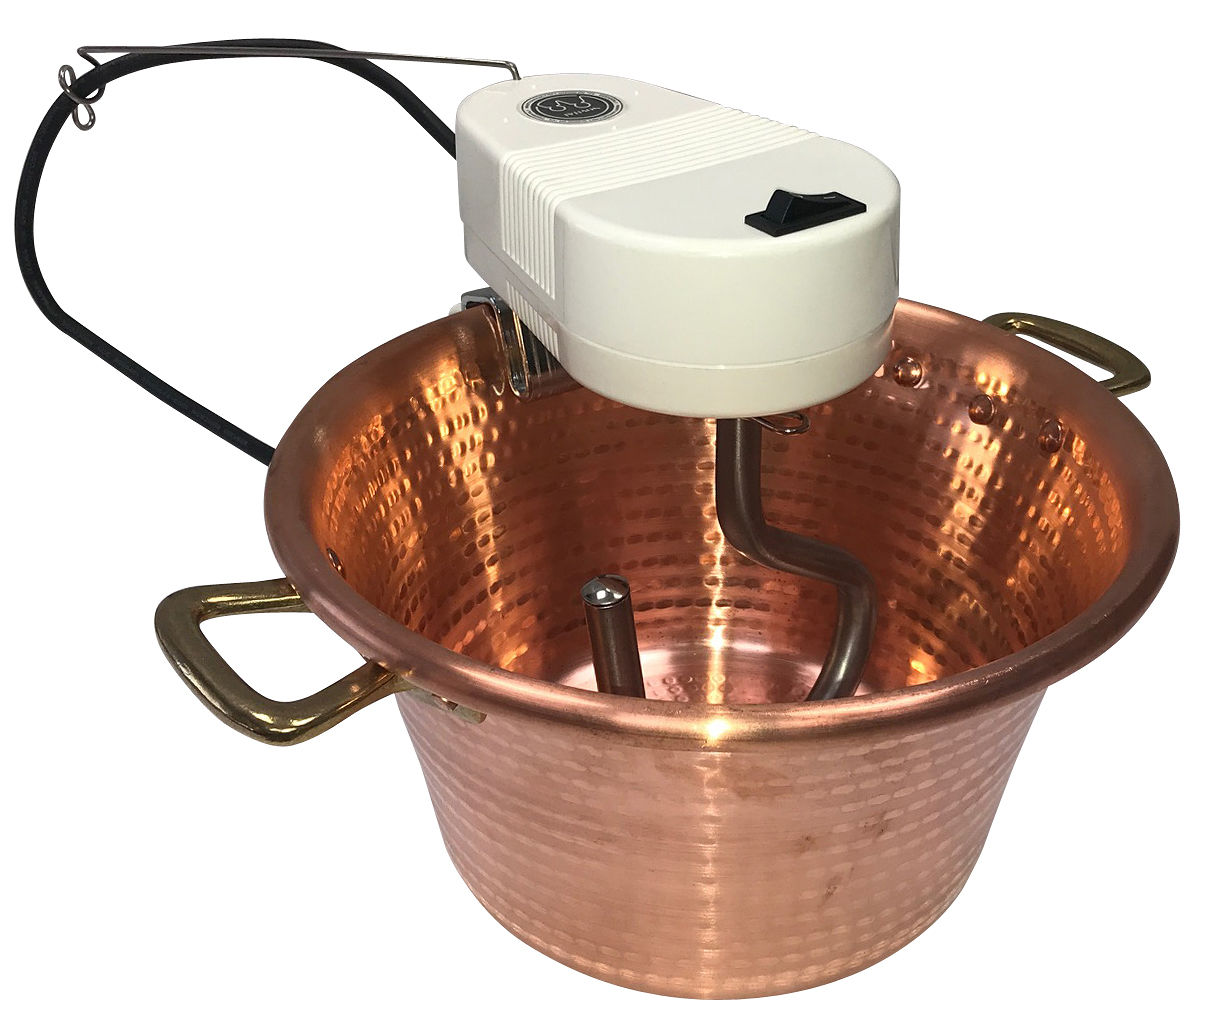 Copper Preserving Pan with electric stirrer